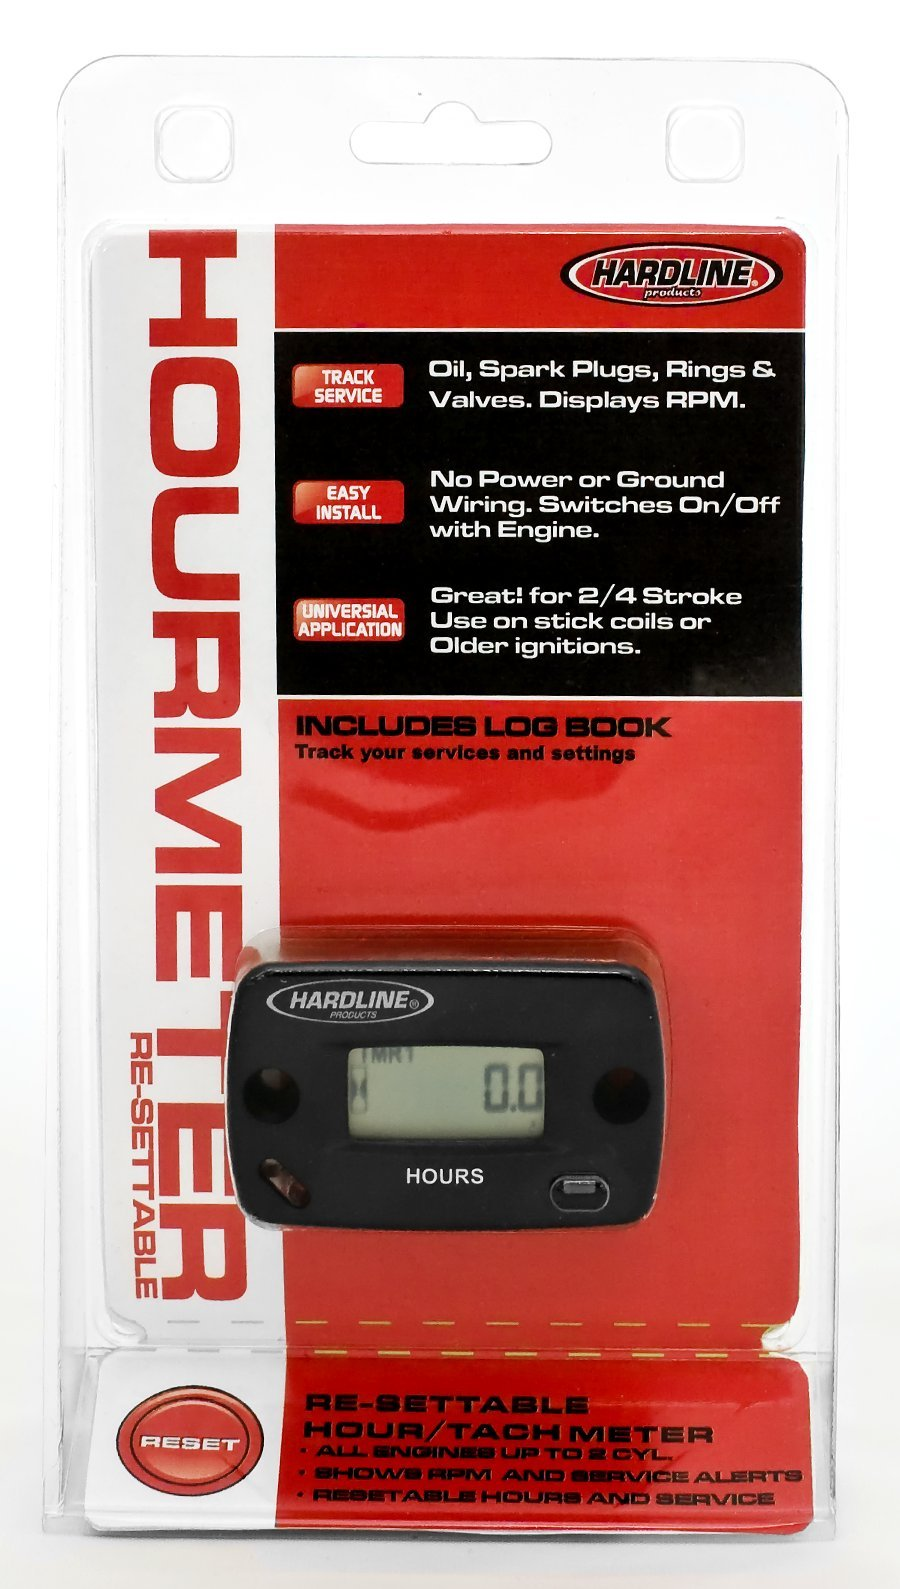 Hardline Products HR-8067-2 Re-Settable Hour Meter with Tachometer by Hardline Products